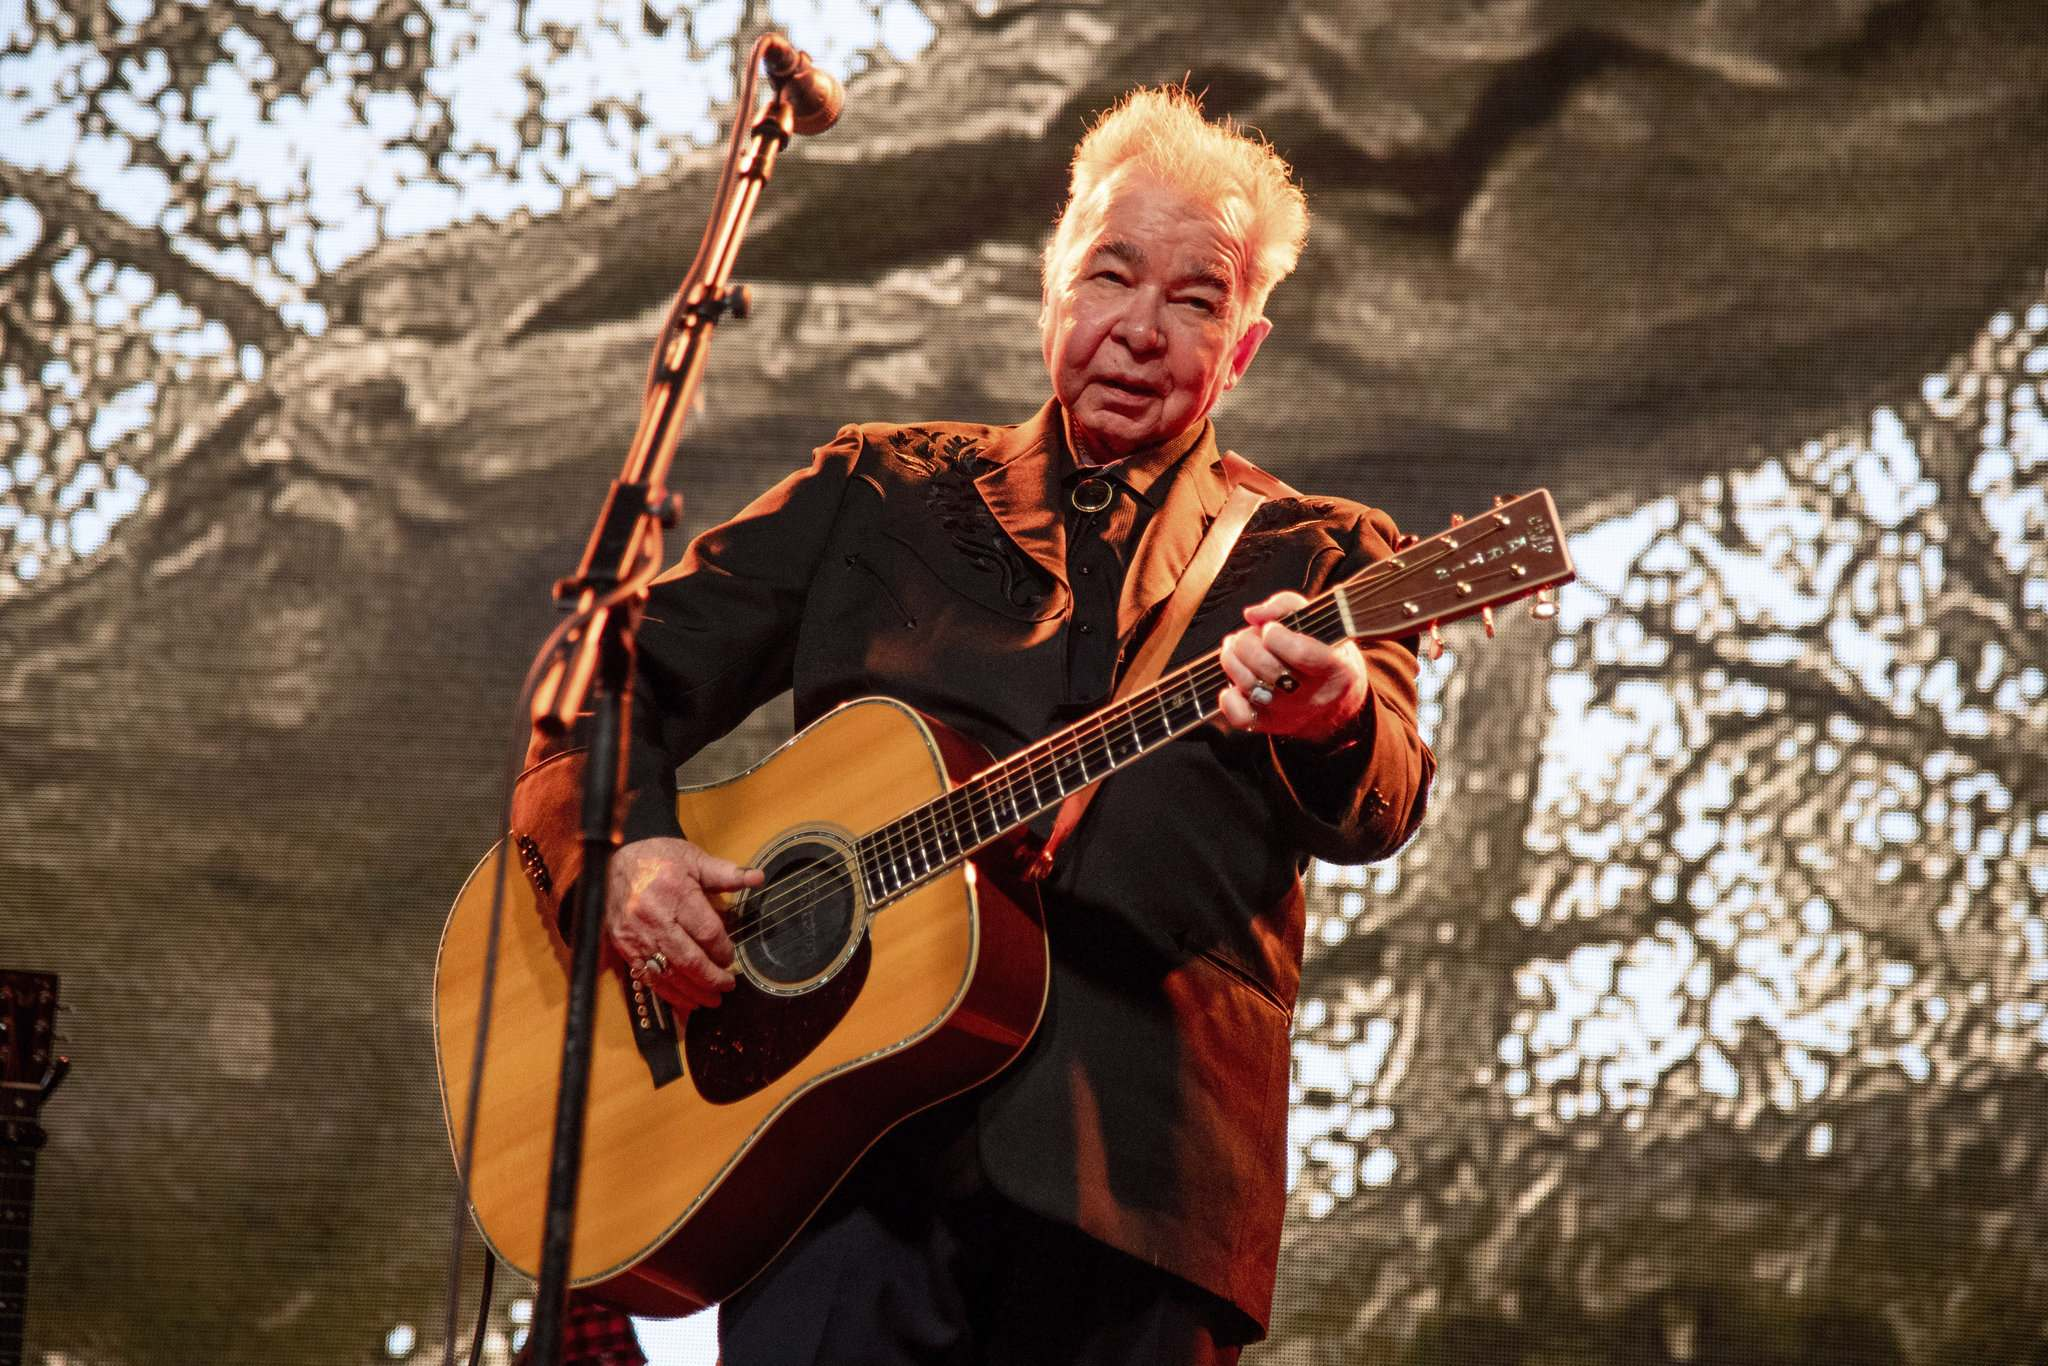 Photo by Amy Harris/Invision/AP, File</p><p>John Prine performs at the Bonnaroo Music and Arts Festival in Manchester, Tenn. Prine died Tuesday from complications of the coronavirus. He was 73.</p></p>